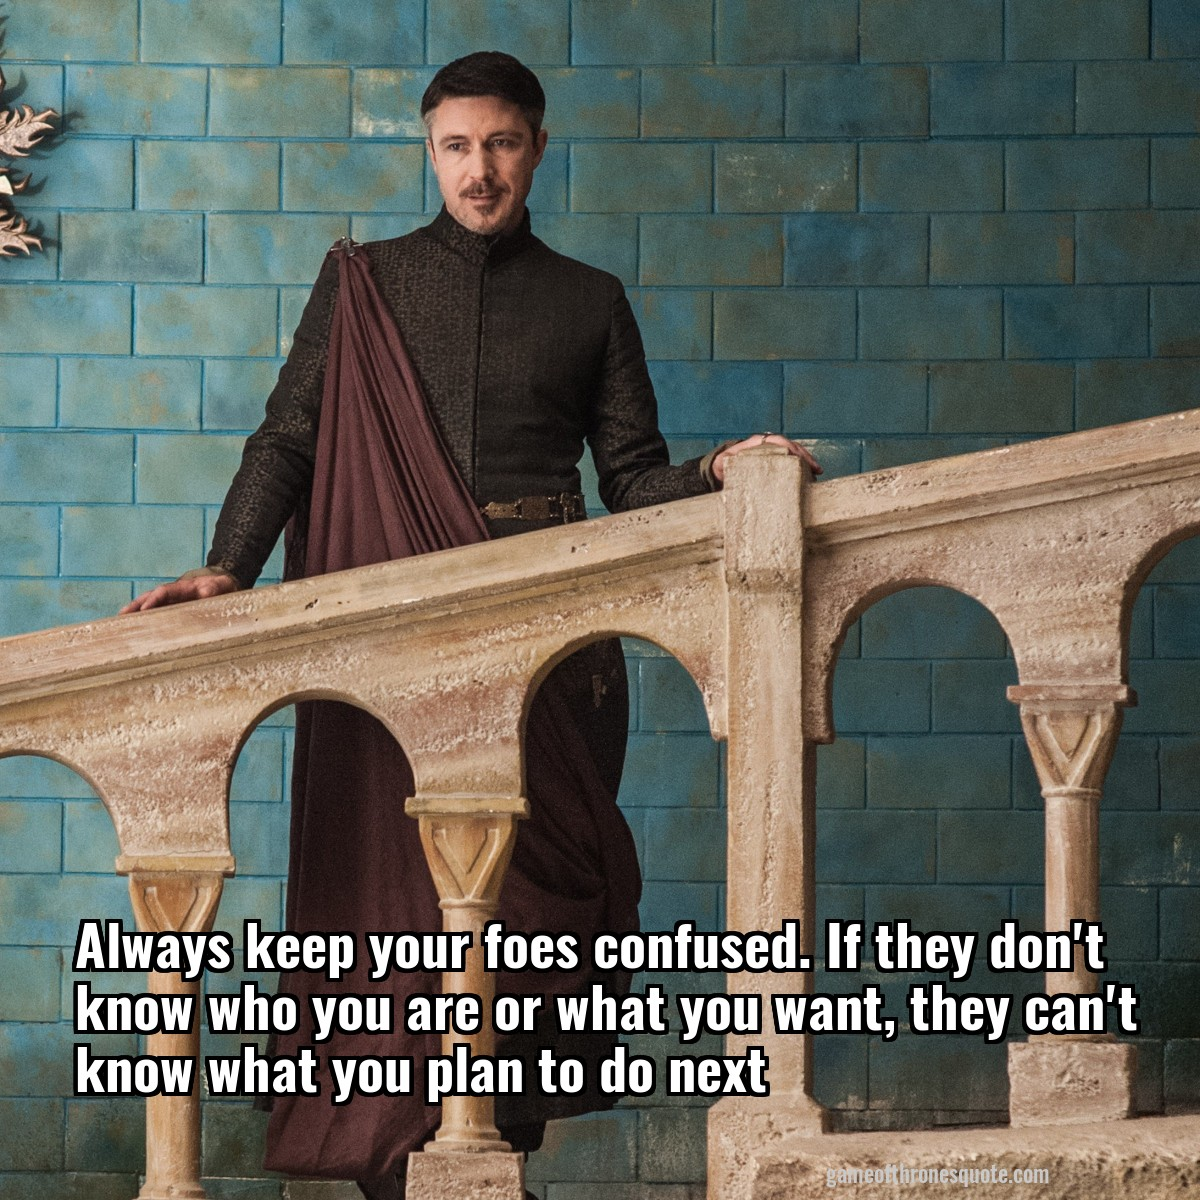 It S Always Confusing When It Comes To House Plan While: Petyr Baelish: Always Keep Your Foes Confused. If They Don